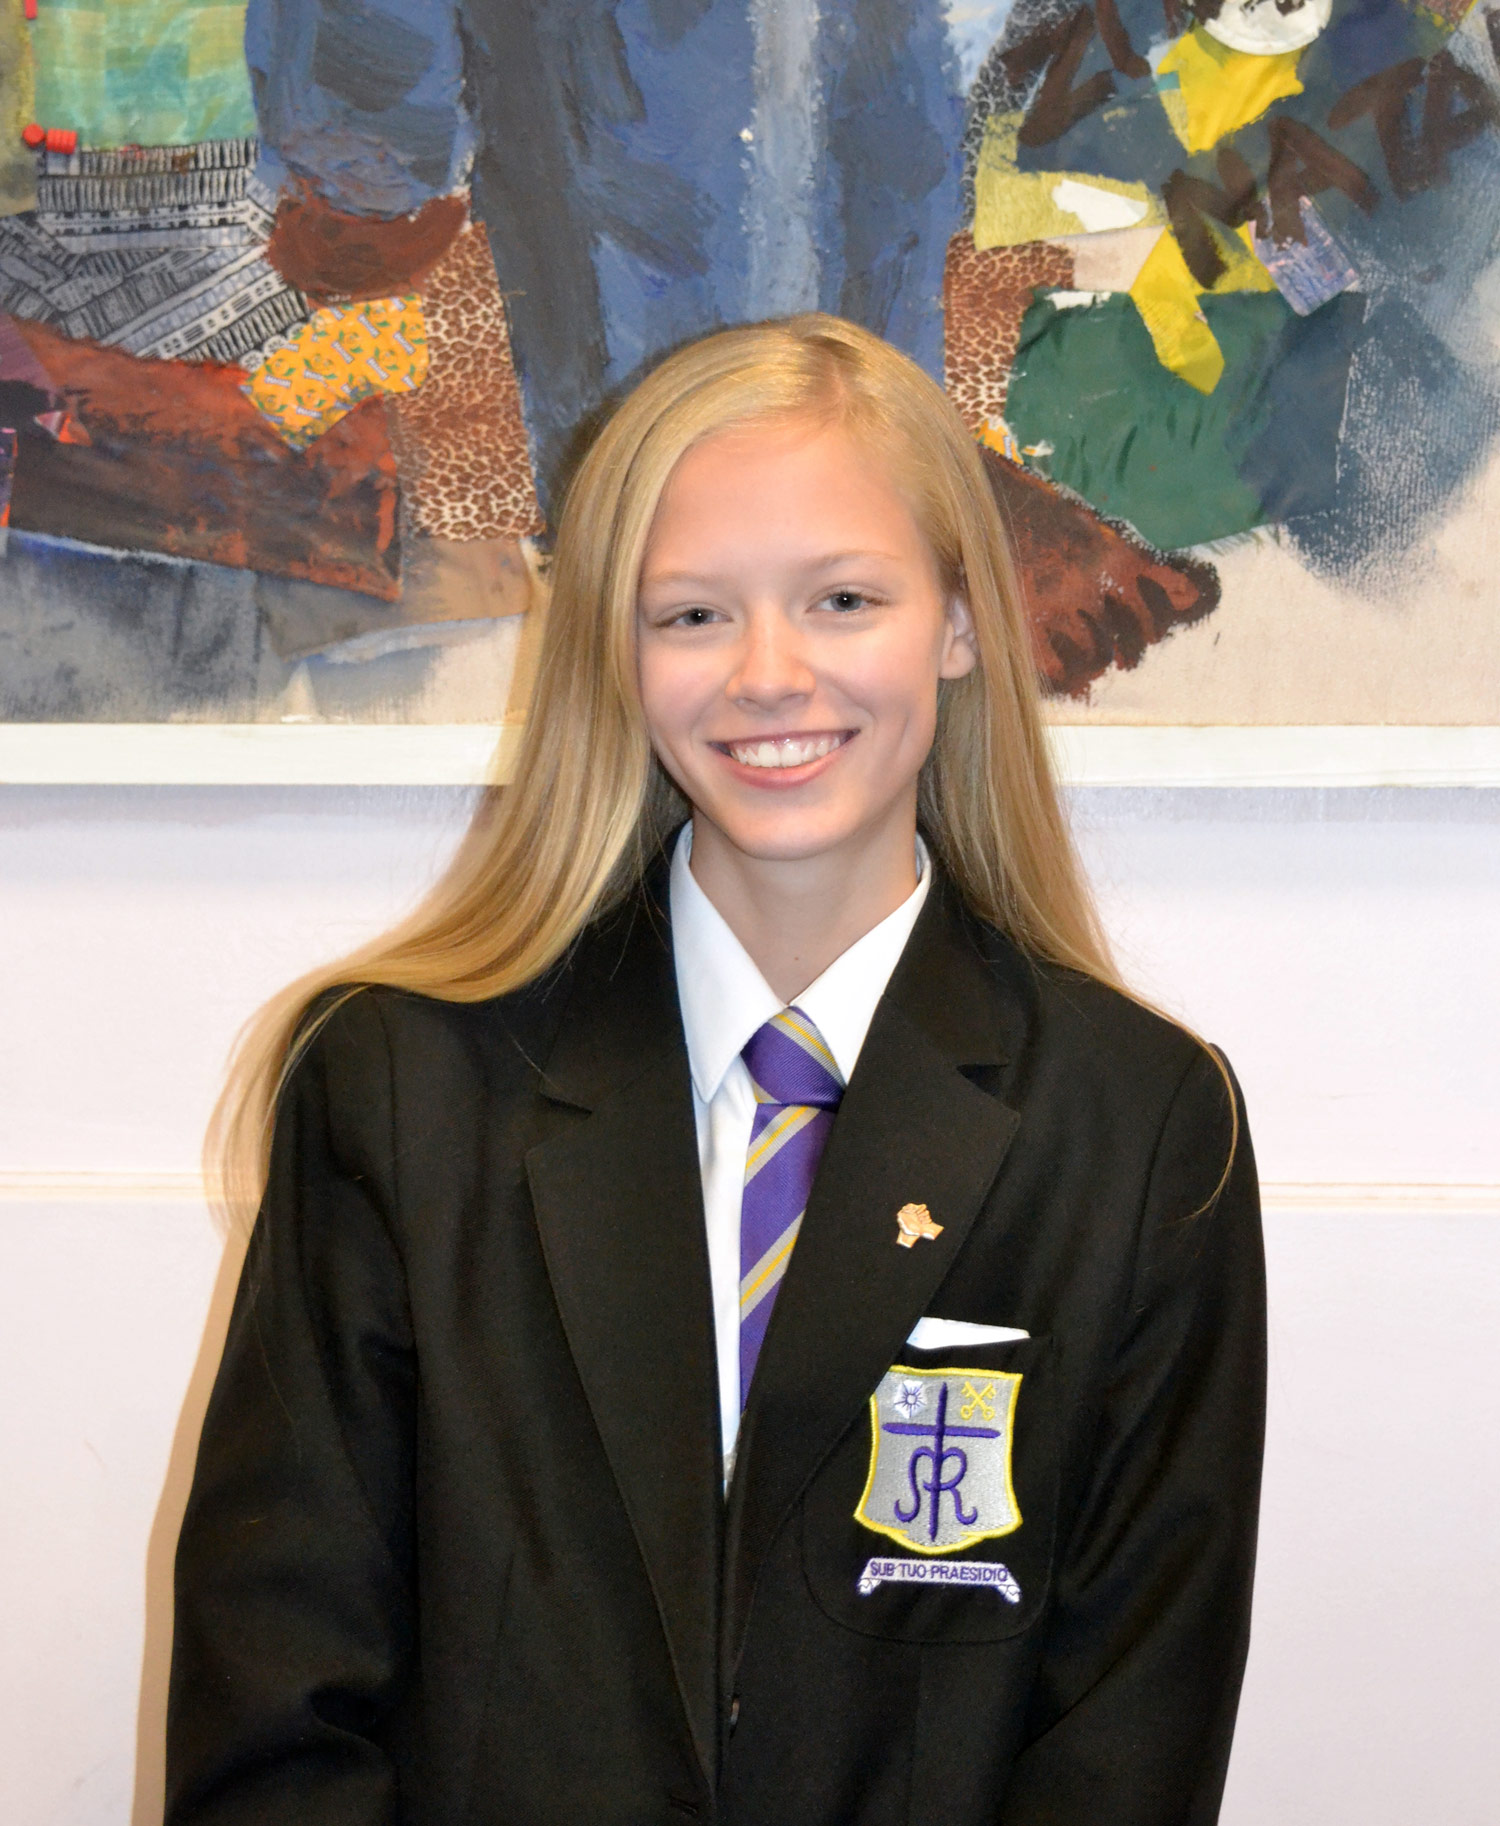 Photo: Caitlin Copsey (Year 9) with her Bronze Award which was presented during assembly